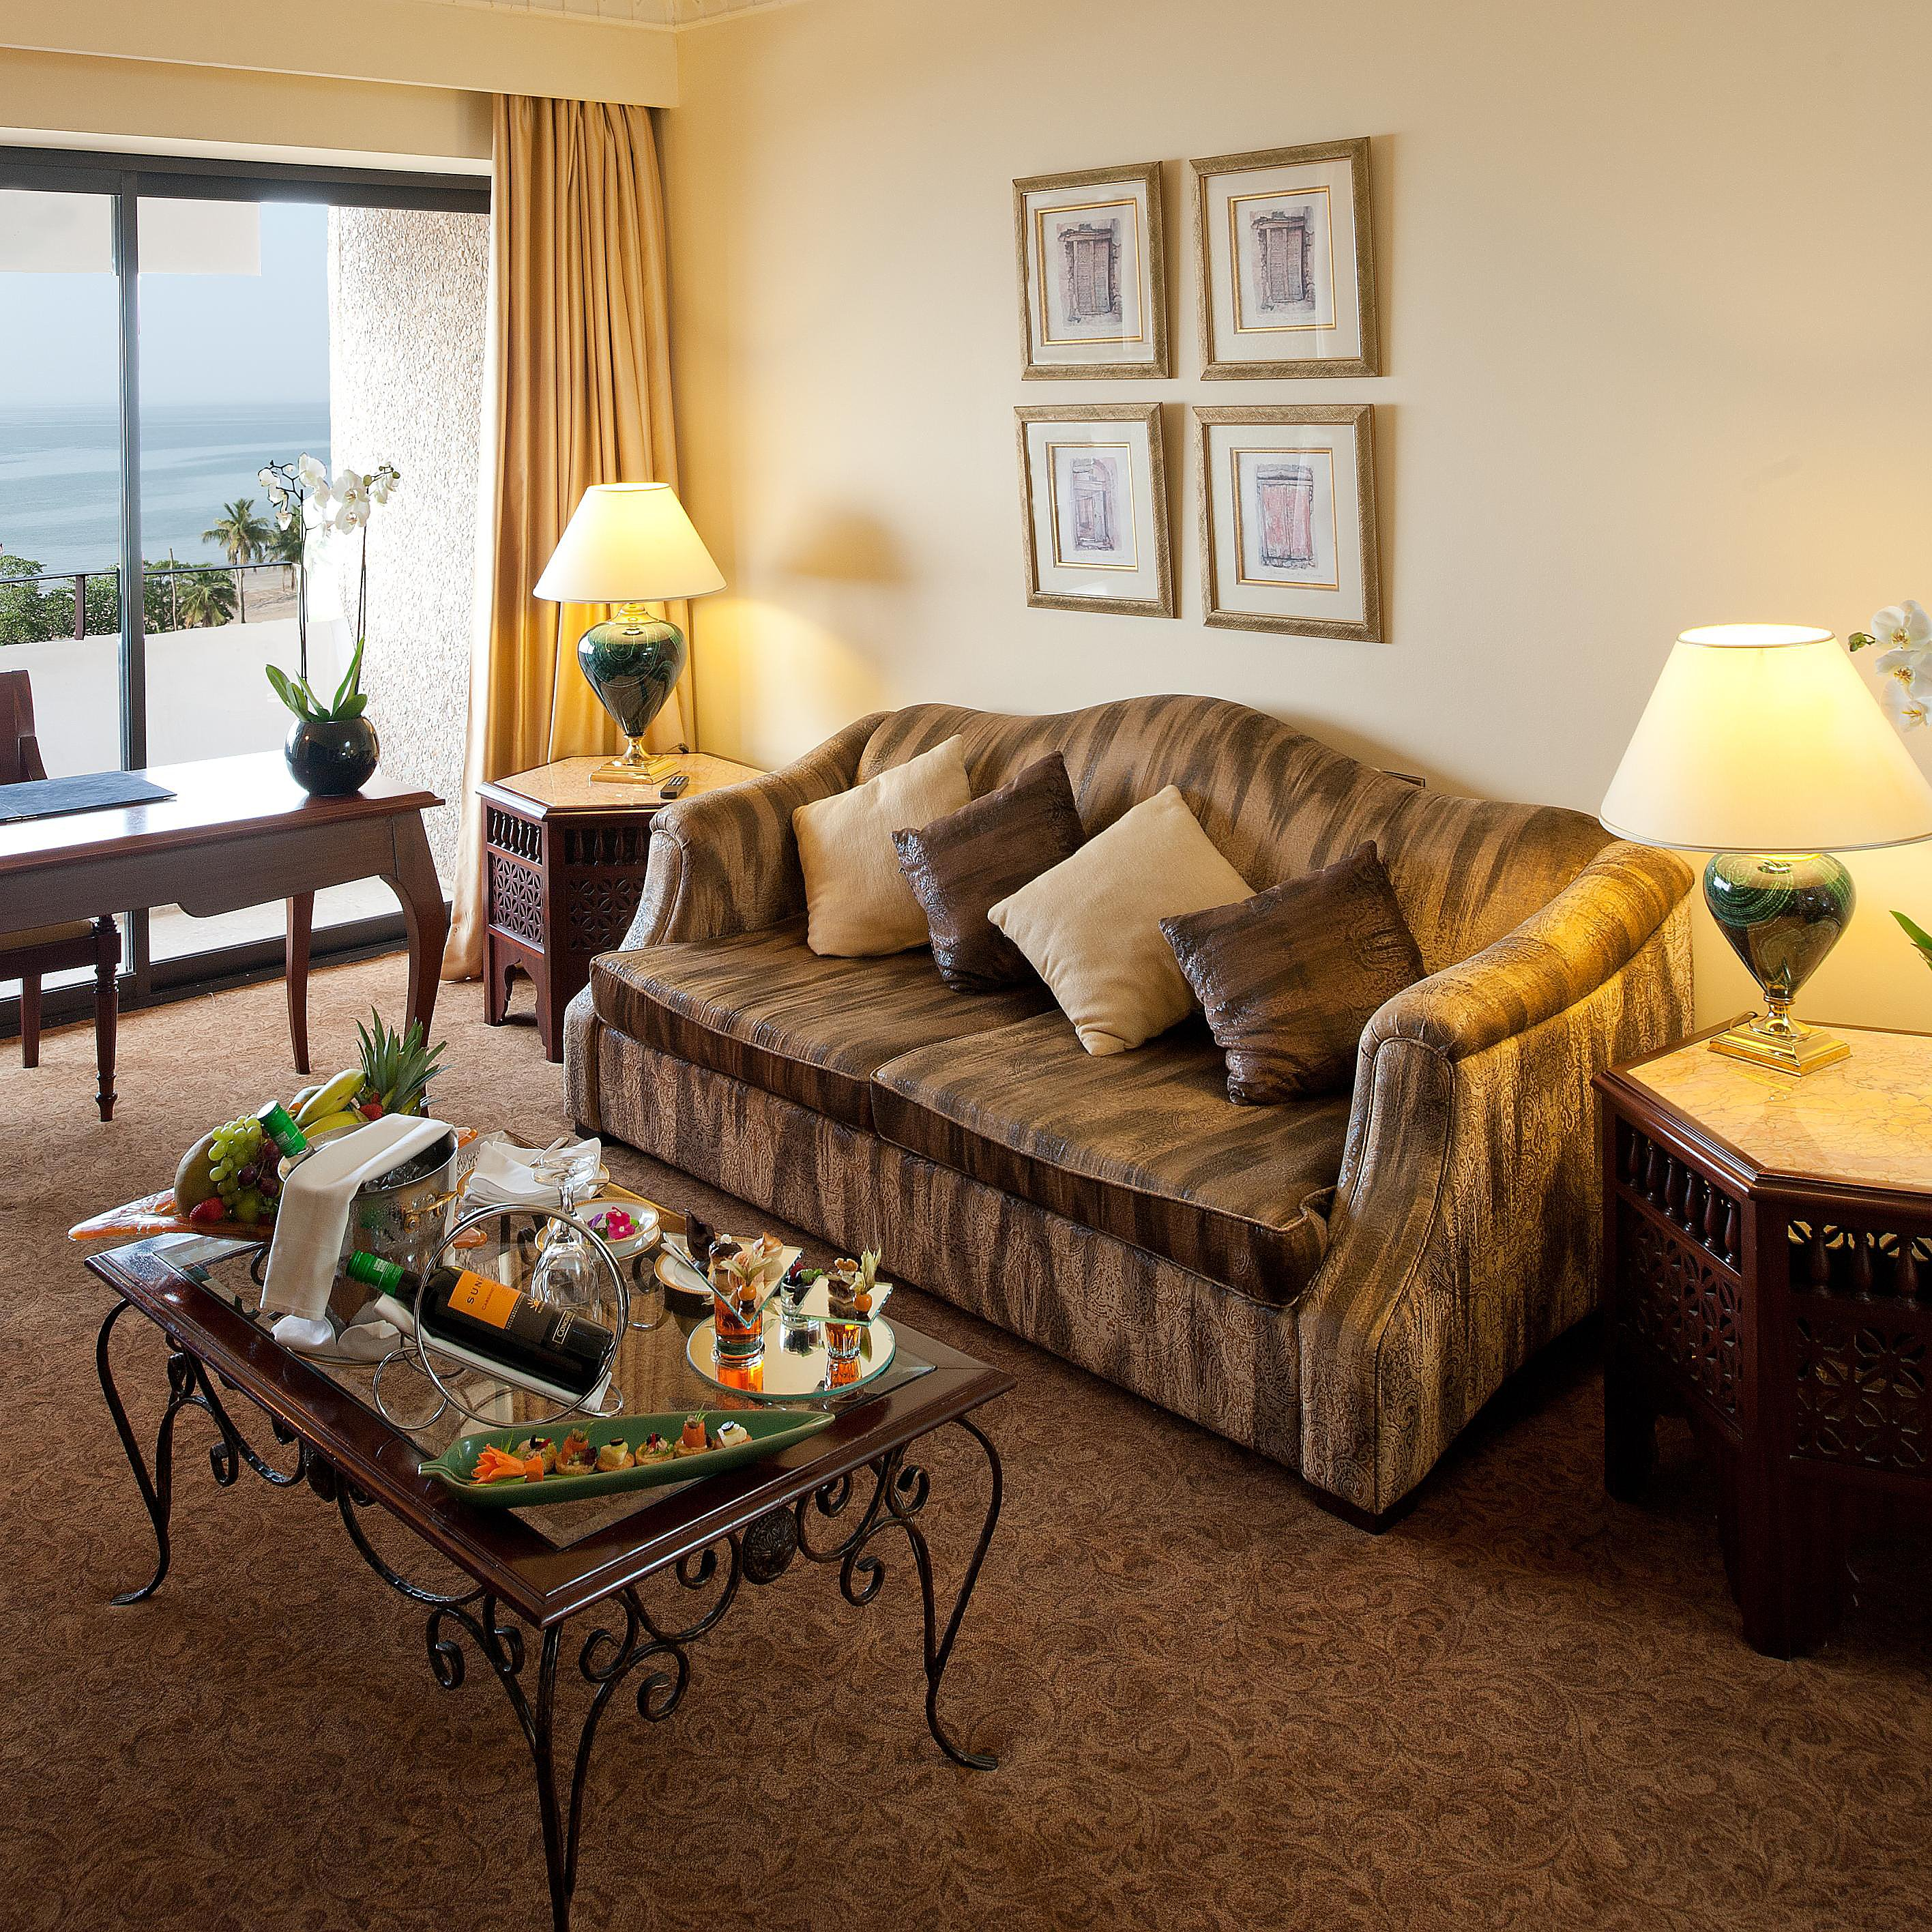 bd7583568e34 InterContinental Muscat - Muscat